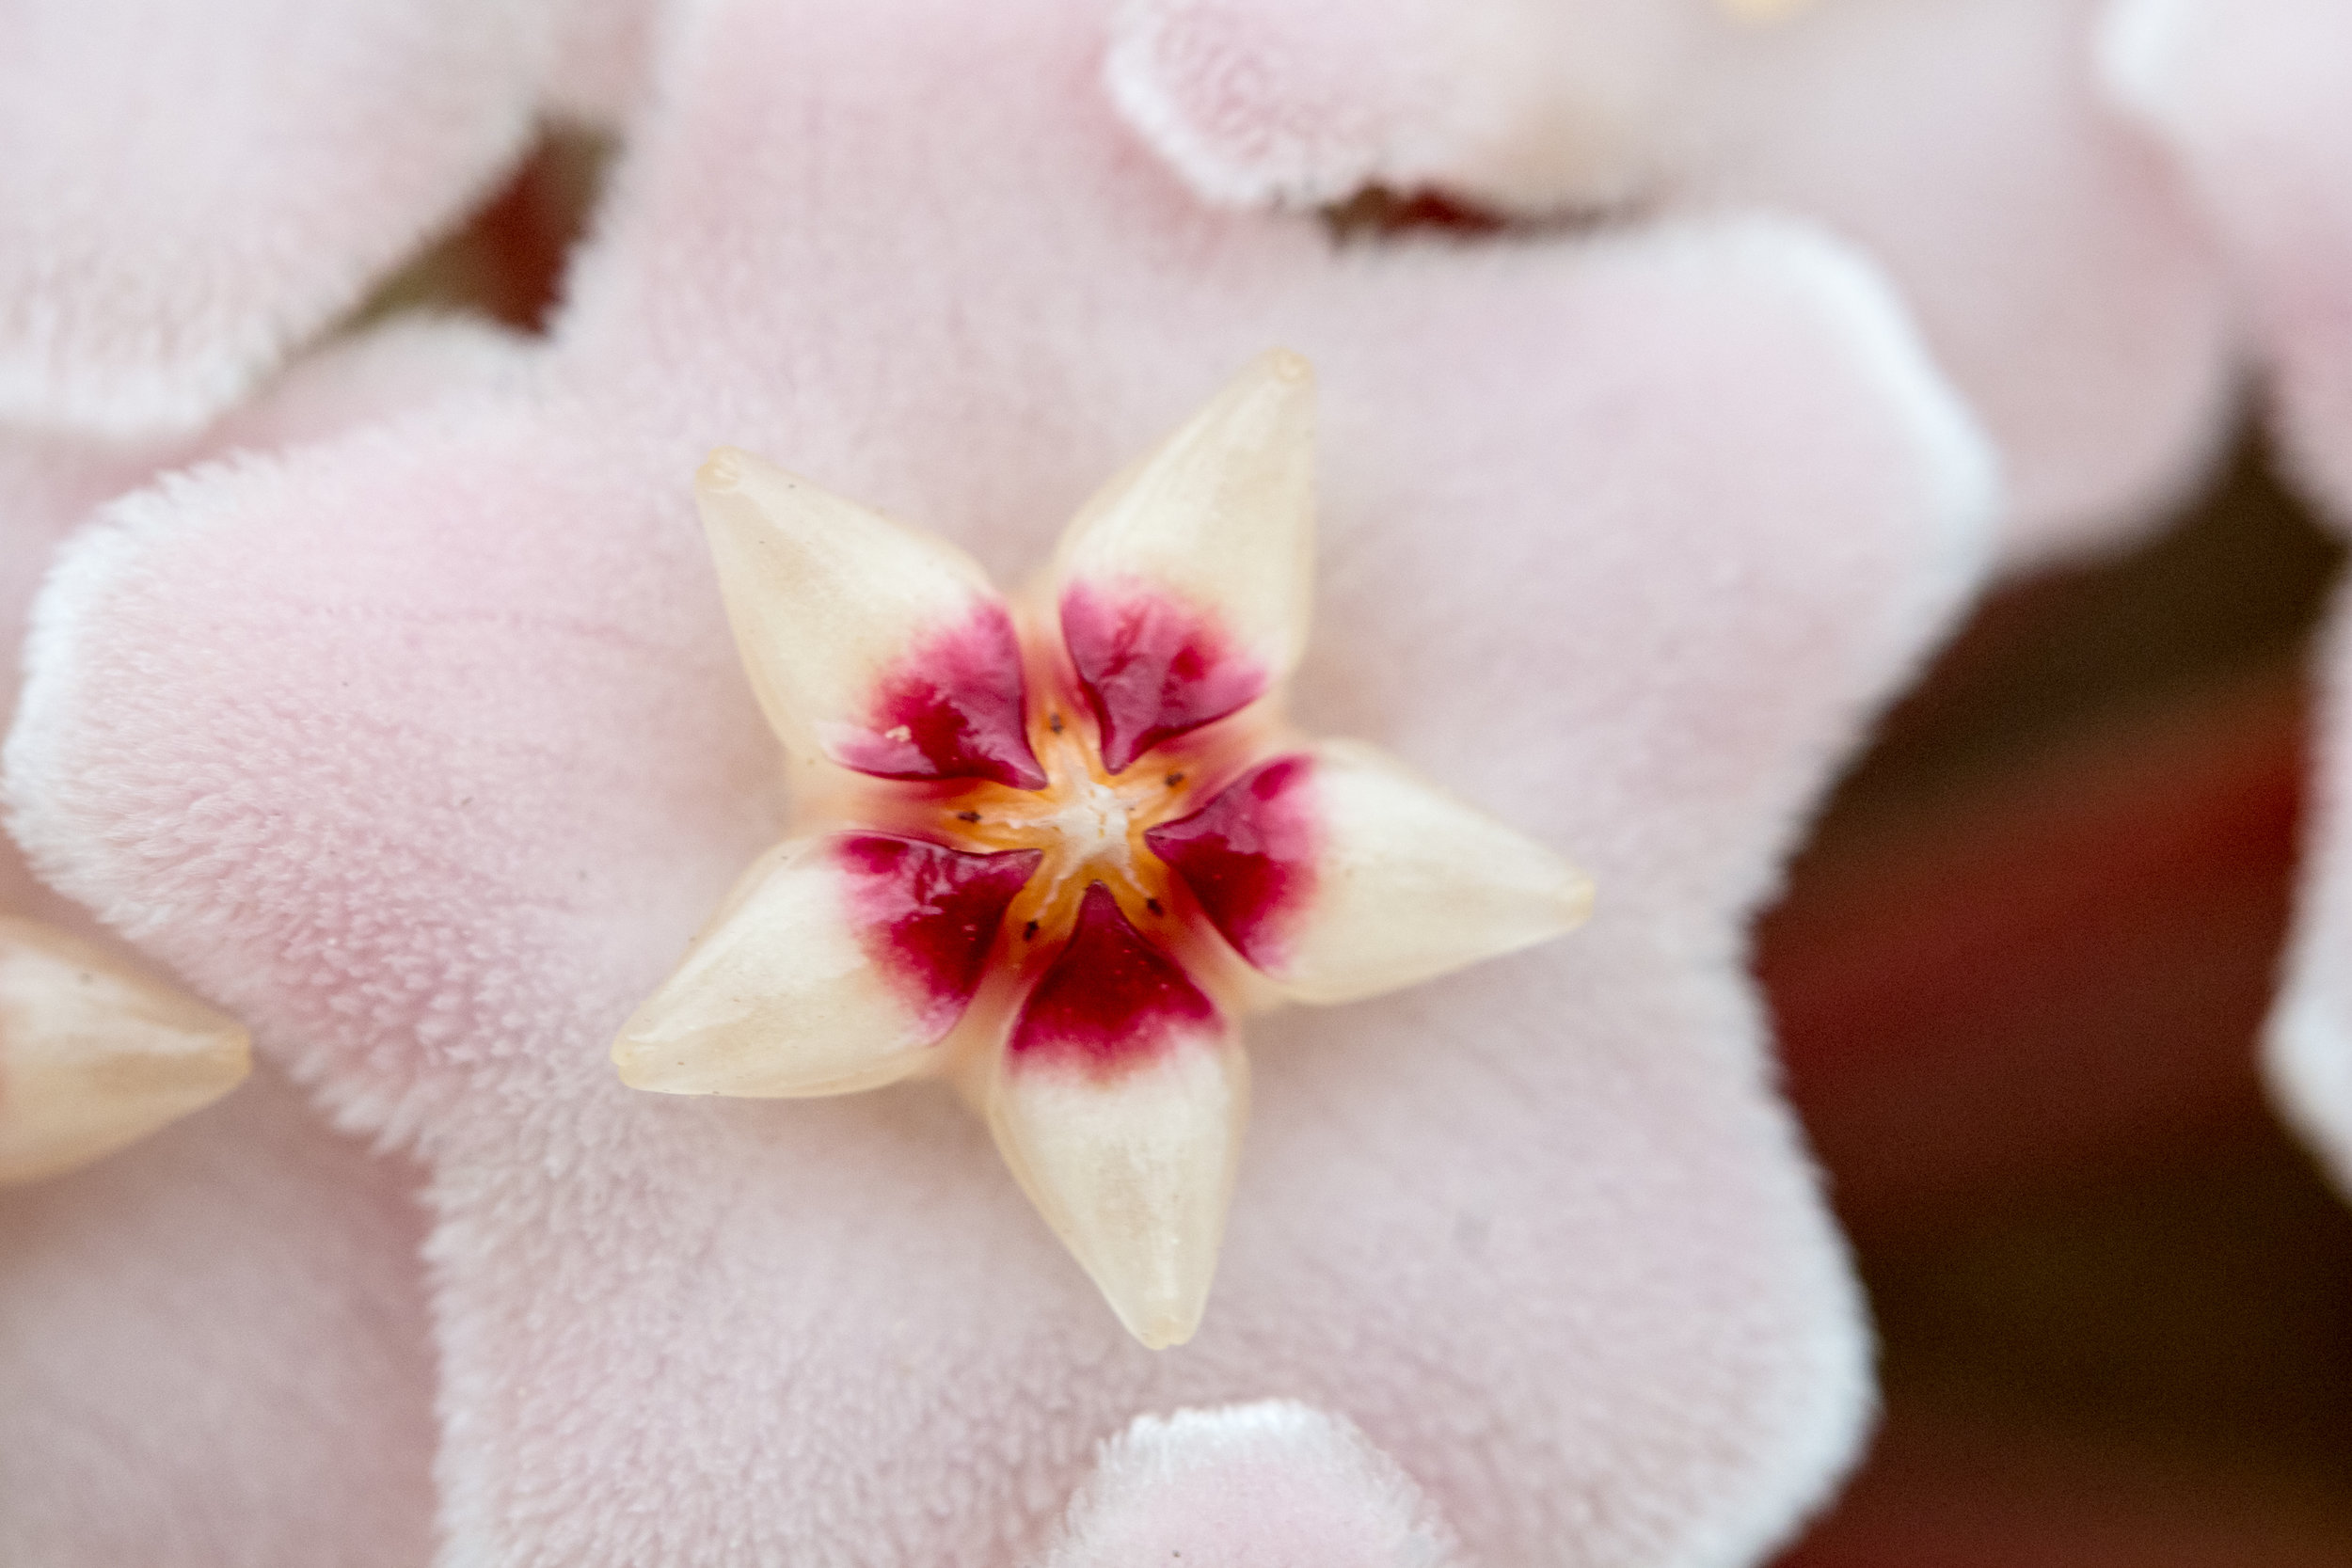 A close-up of hoya flowers, which allows you to really see their true beauty.